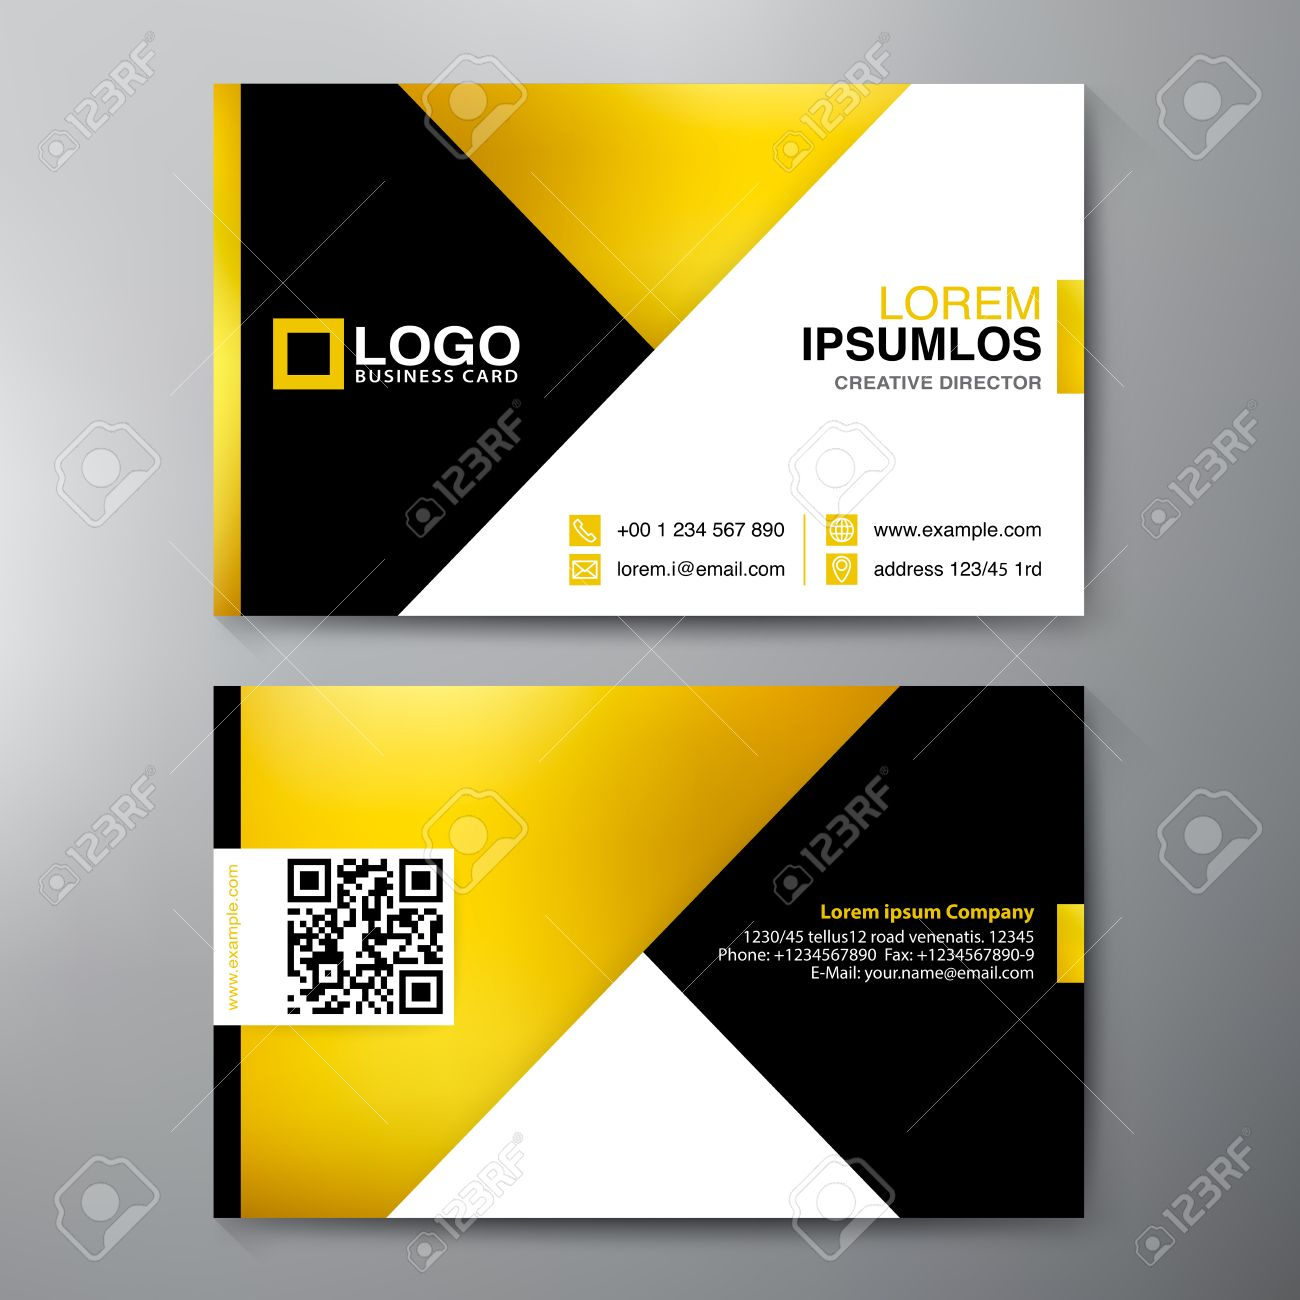 Modern business card design template vector illustration royalty modern business card design template vector illustration stock vector 39179741 alramifo Image collections